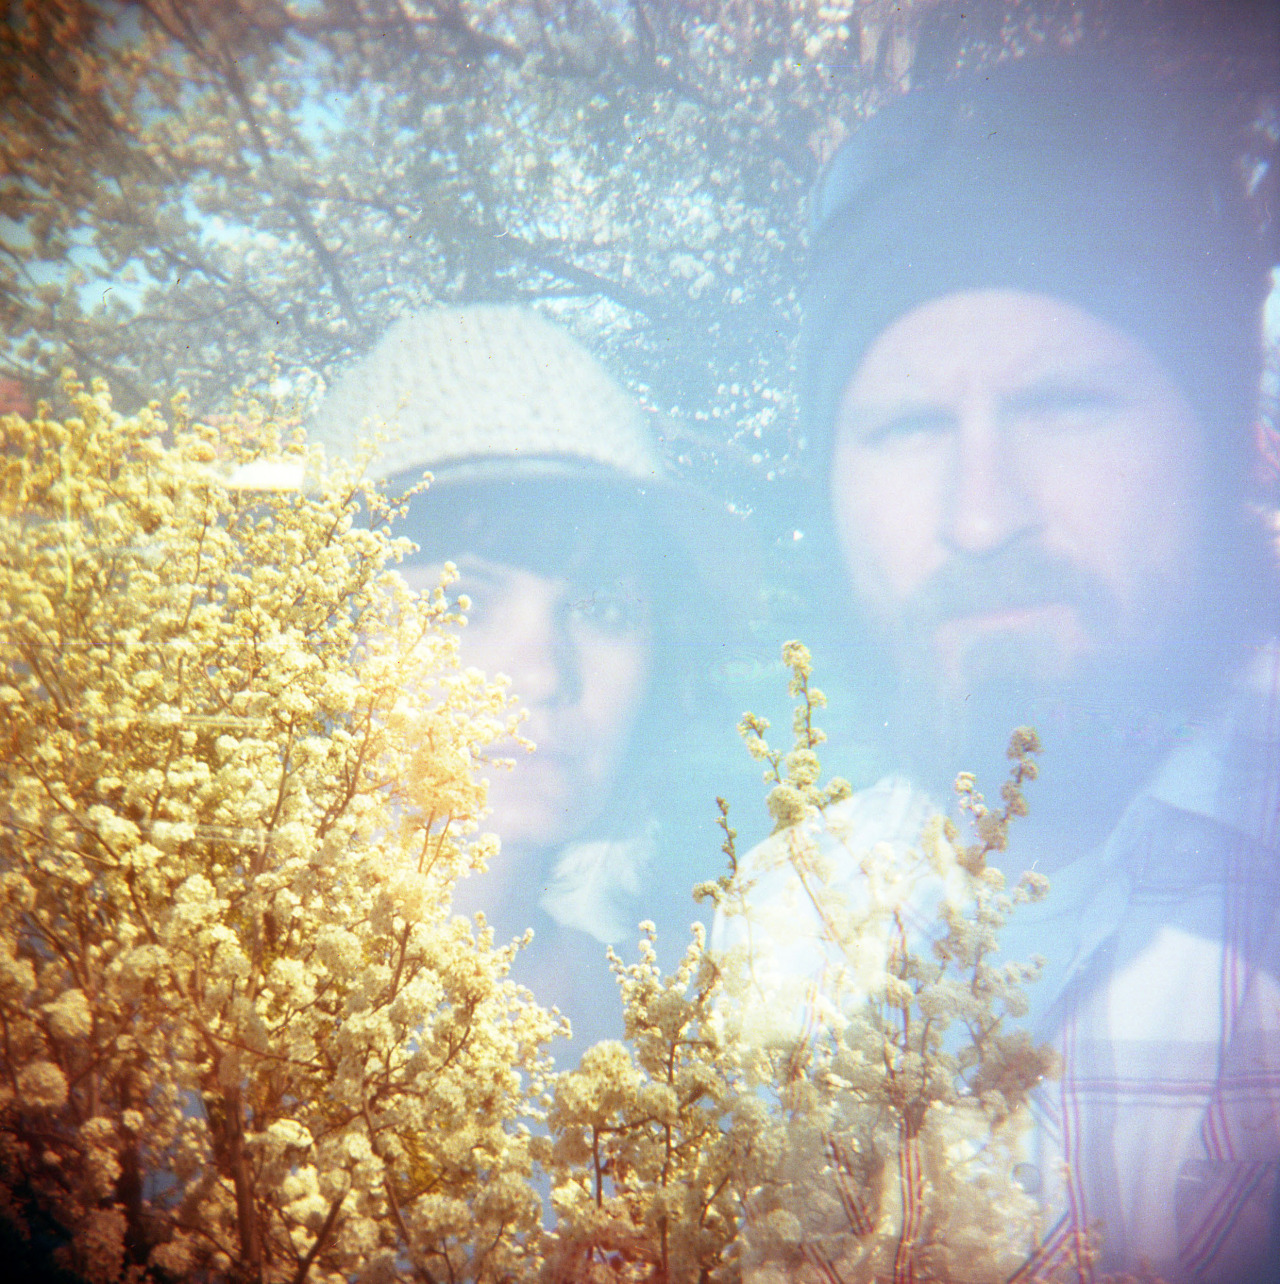 tony and myself sacramento, ca march 2013